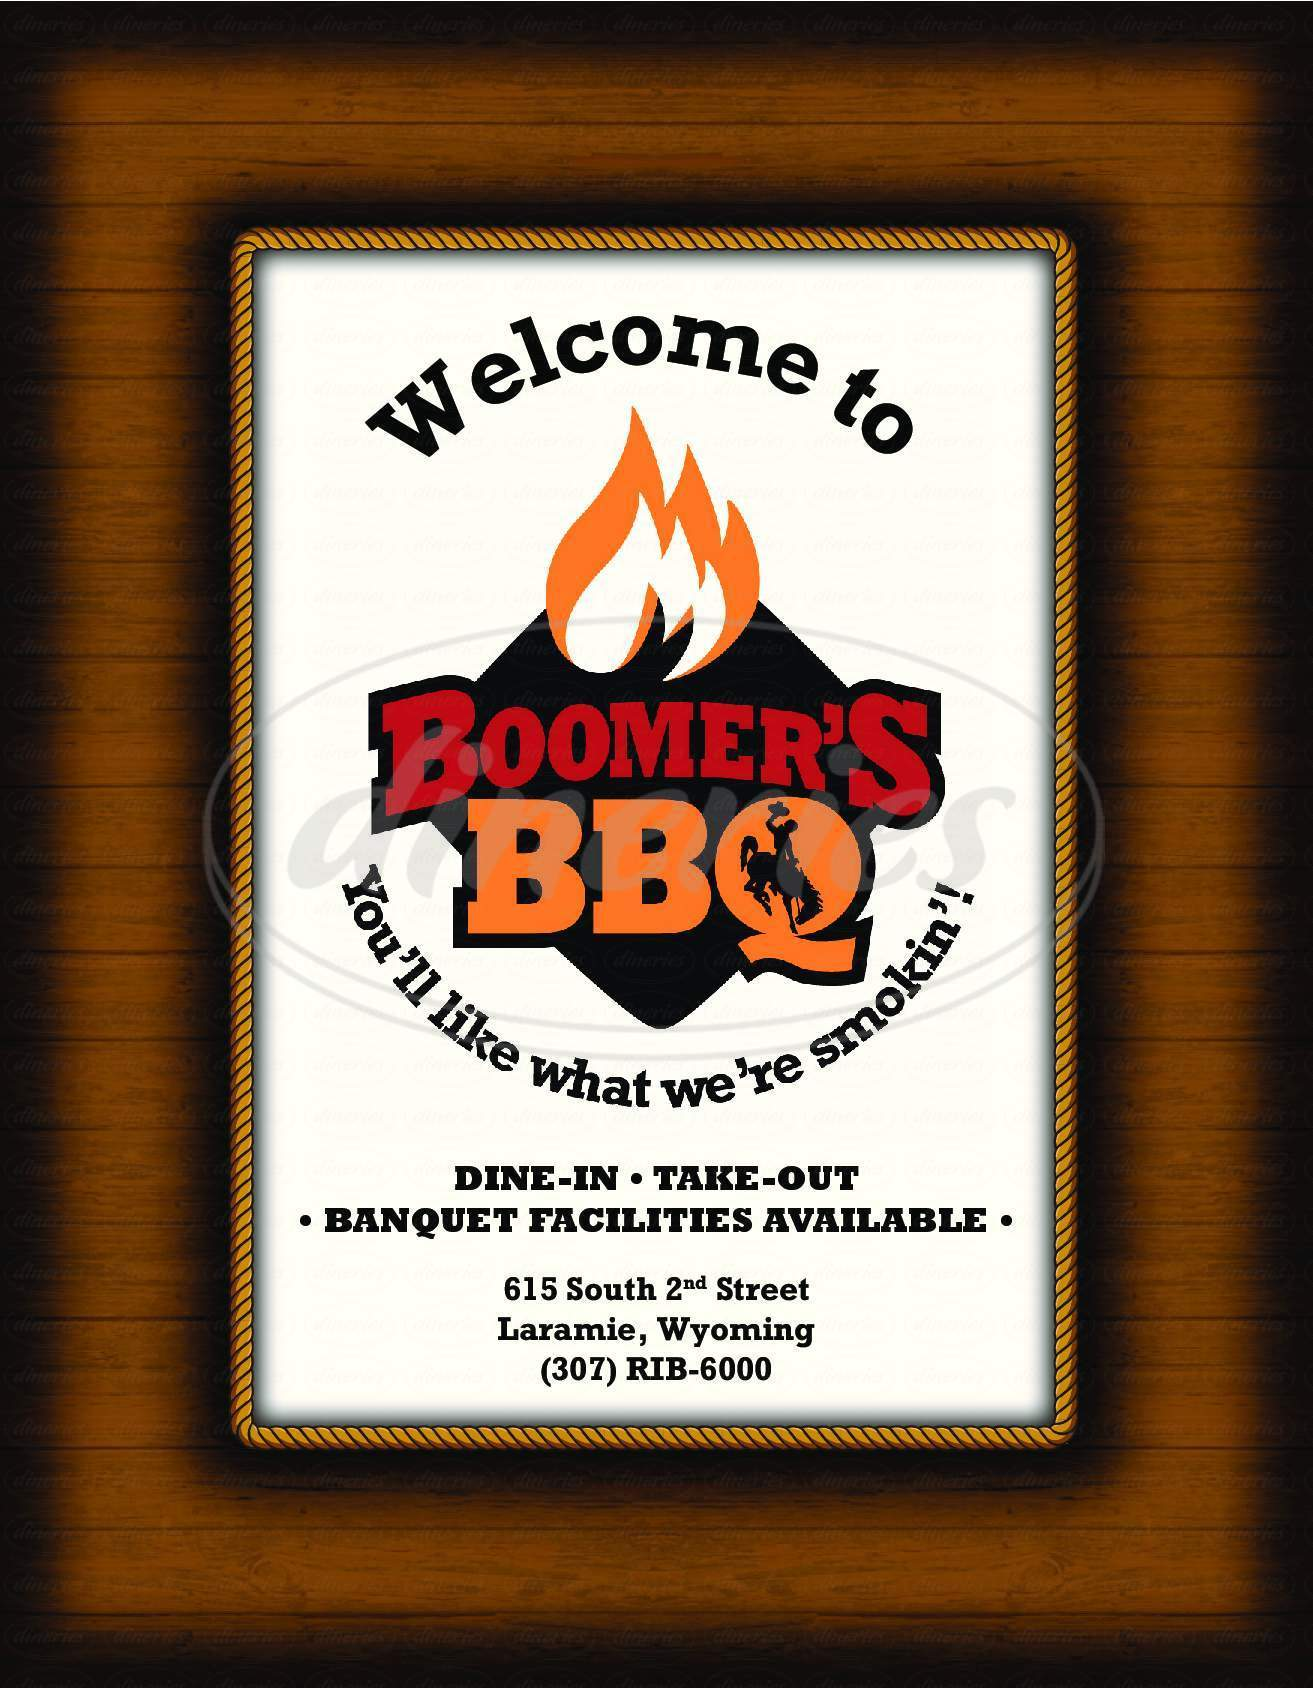 menu for Boomer's BBQ